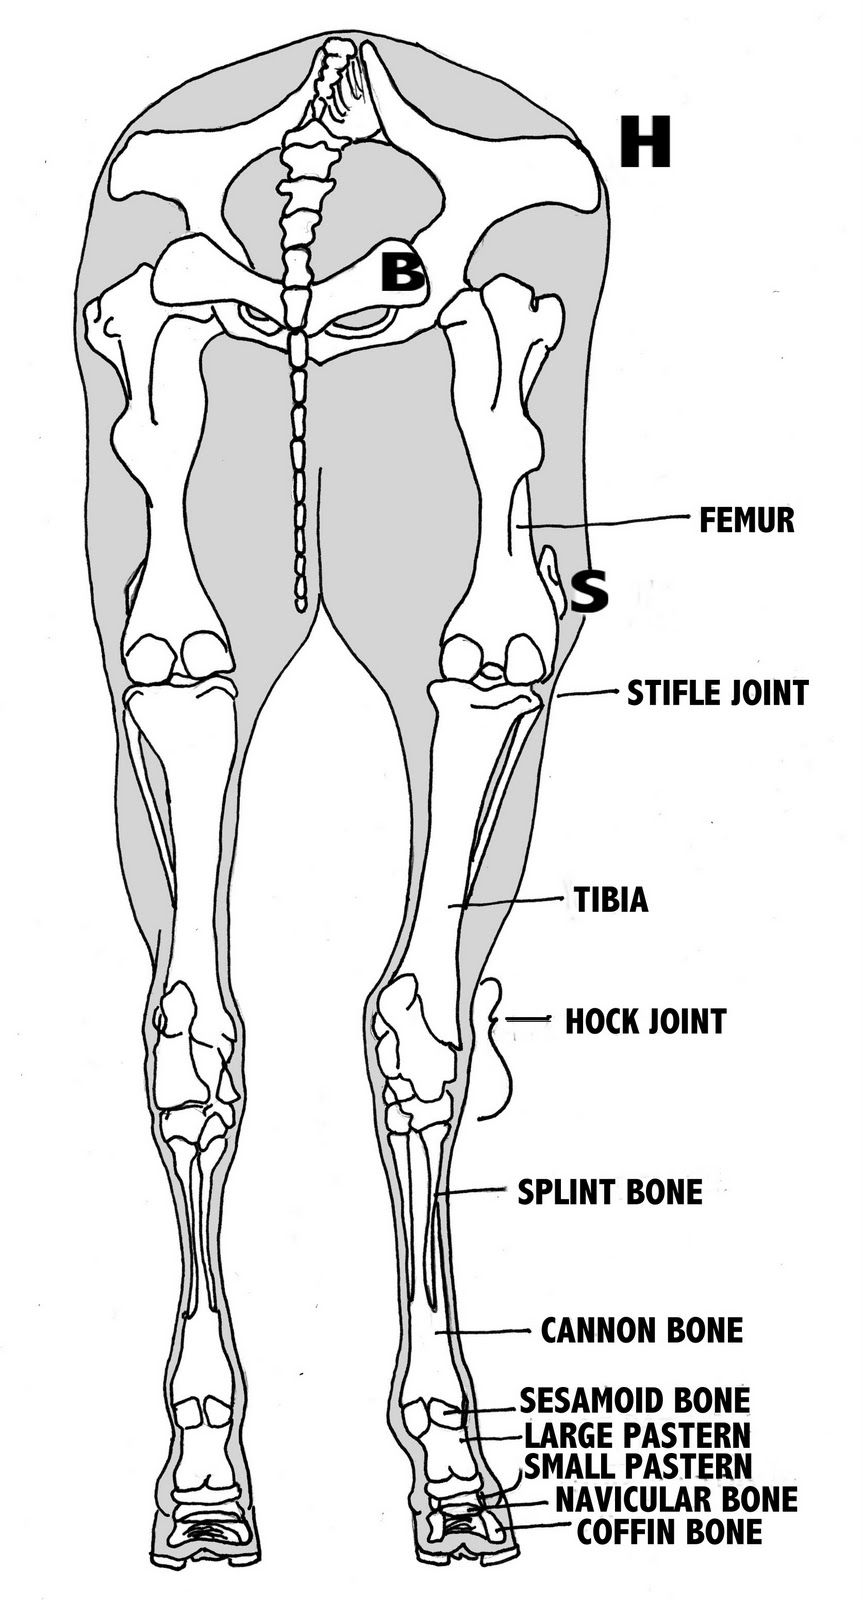 Horse Leg Bone Anatomy If You Look At The Horse From Animal